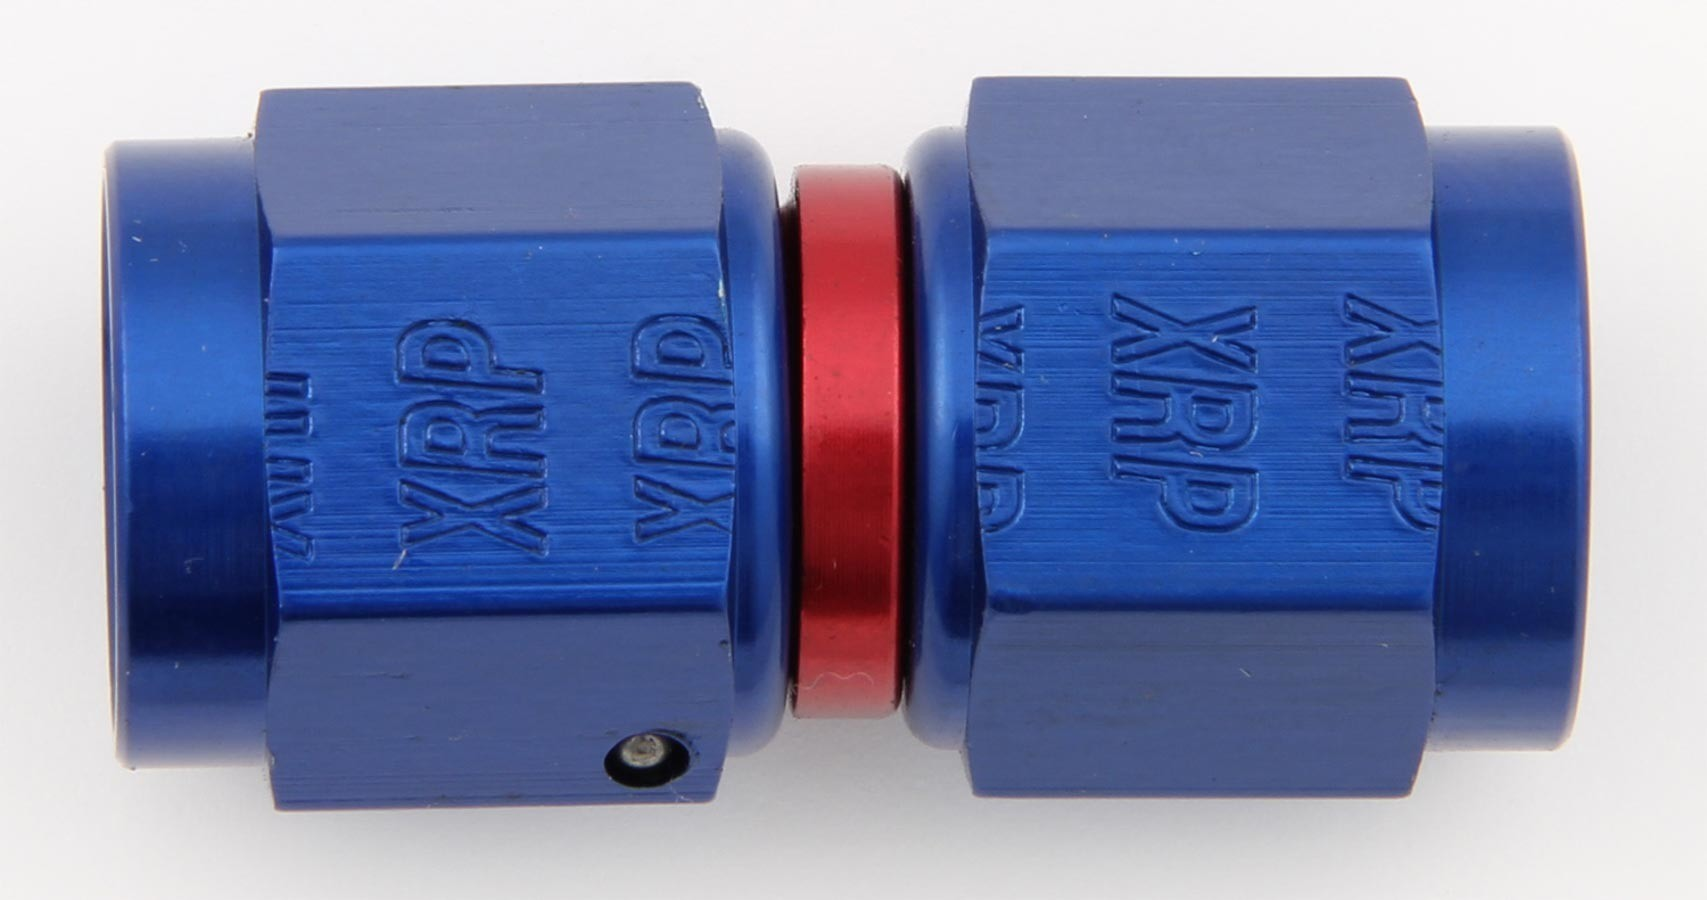 XRP 900110 Fitting, Adapter, Straight, 10 AN Female Swivel to 10 AN Female Swivel, Aluminum, Blue / Red Anodize, Each